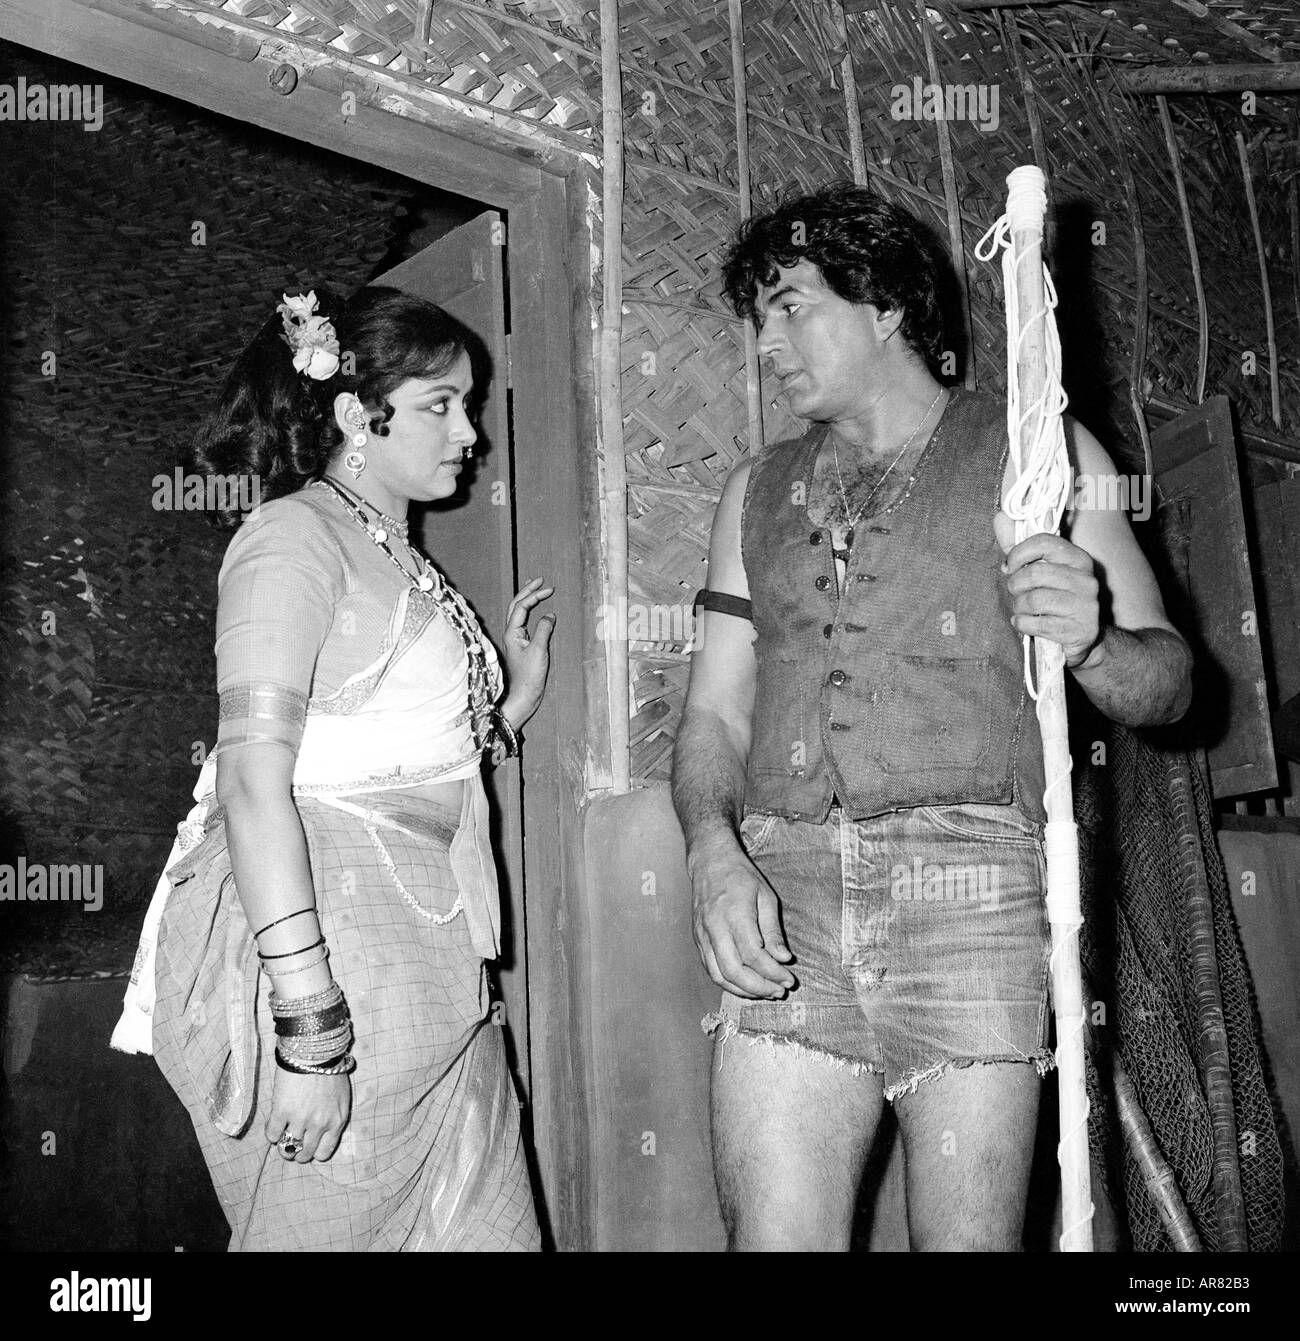 Casting Couch Young: Dharmendra And Hema Malini Indian Film Stars Actor And